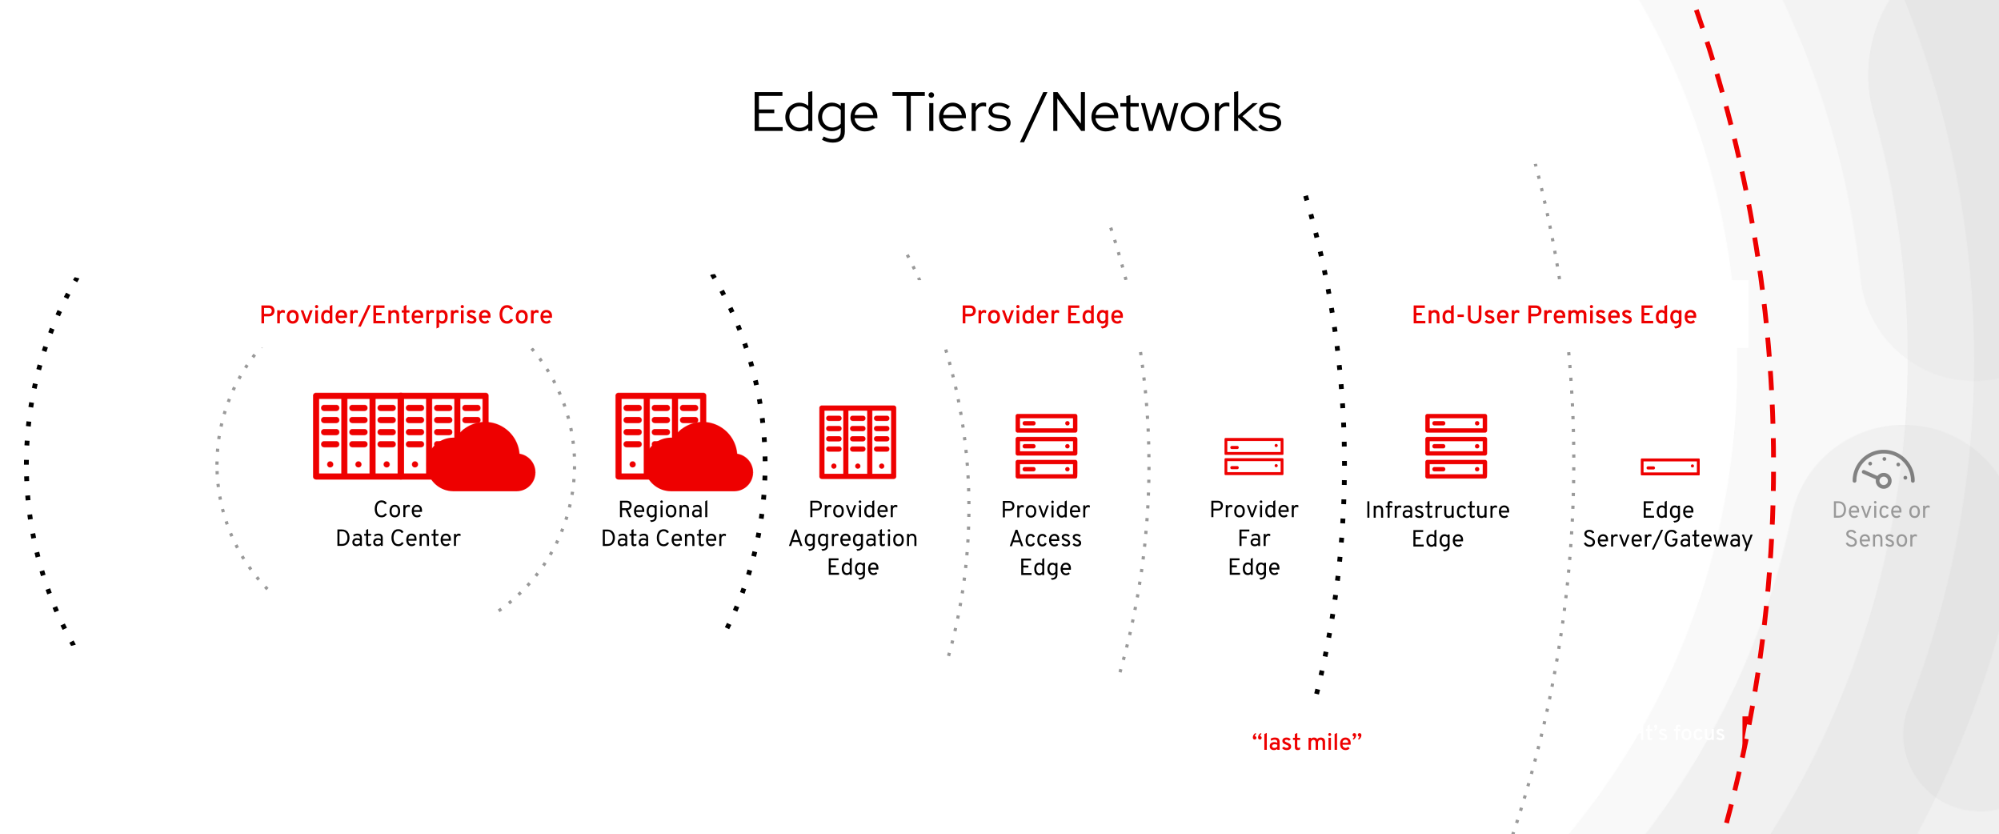 Edge Tiers / Networks diagram